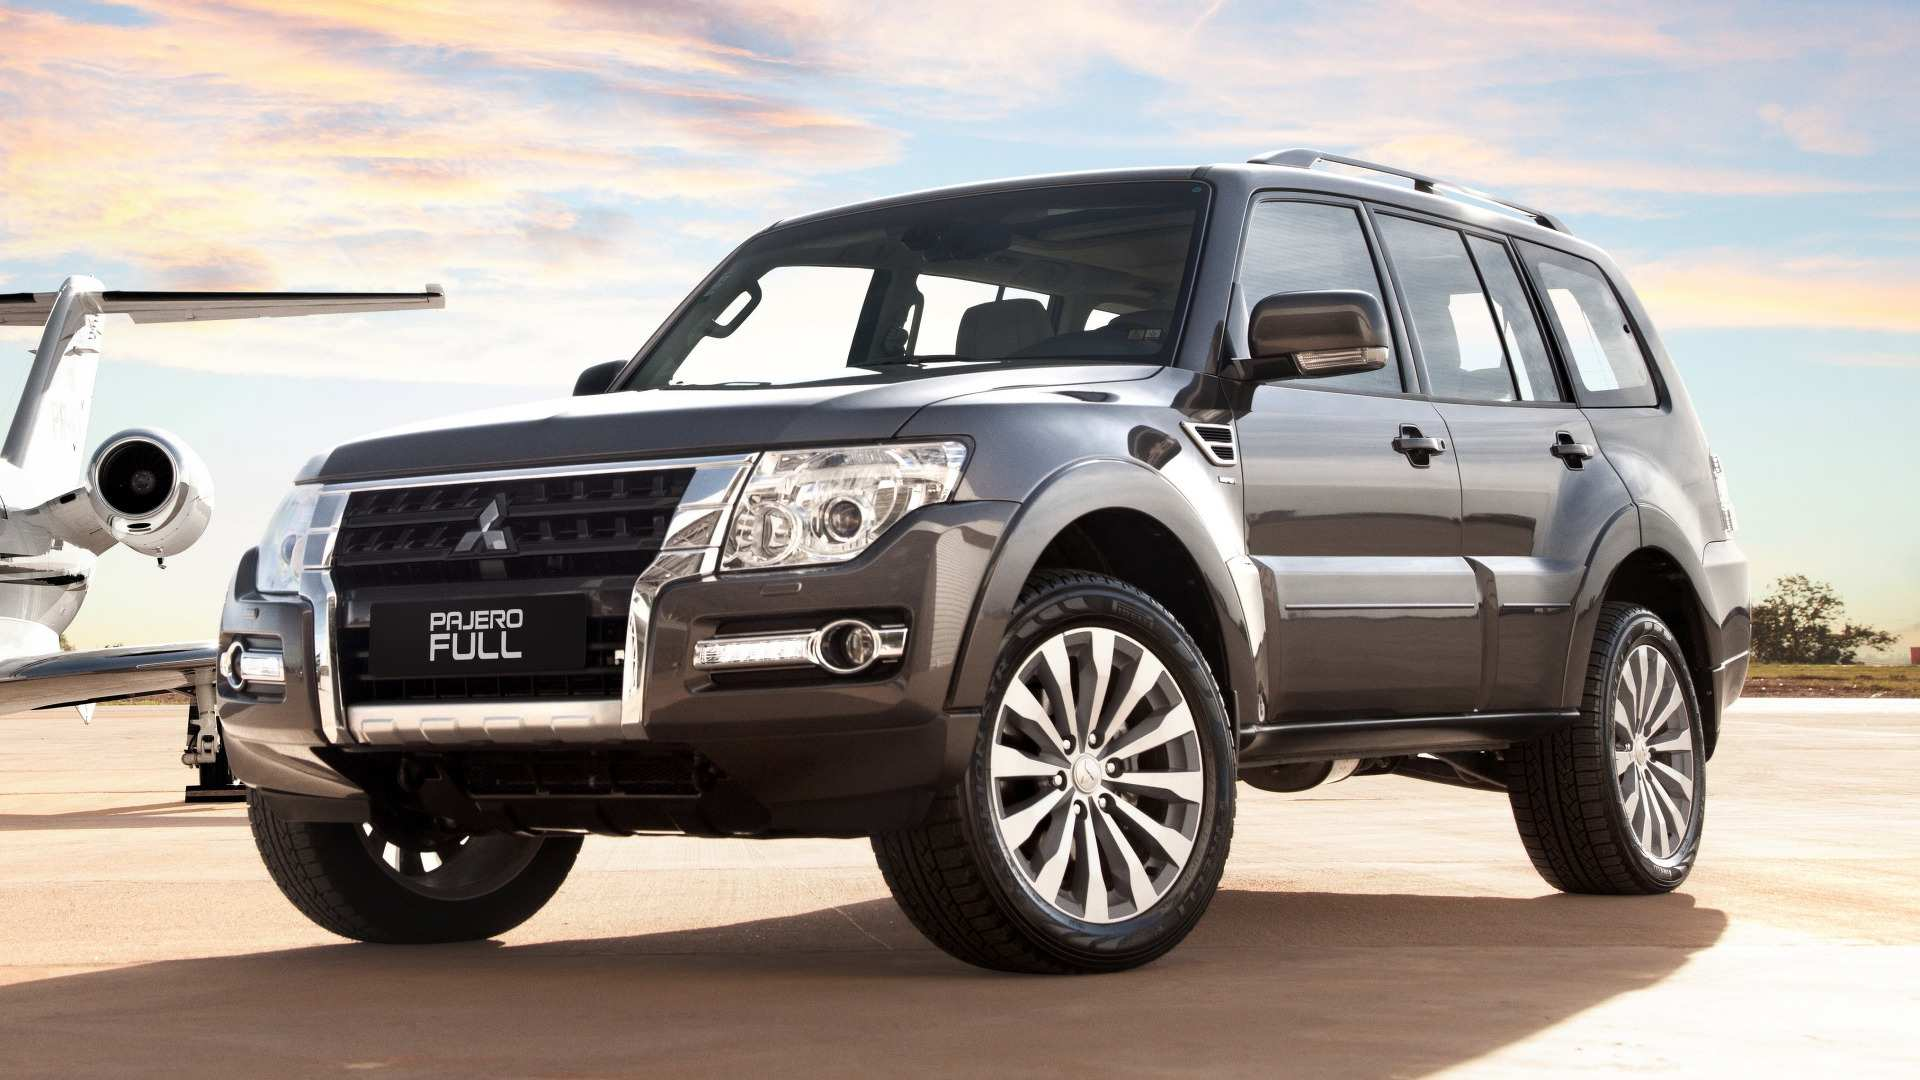 75 Great Mitsubishi Pajero Full 2020 Performance by Mitsubishi Pajero Full 2020